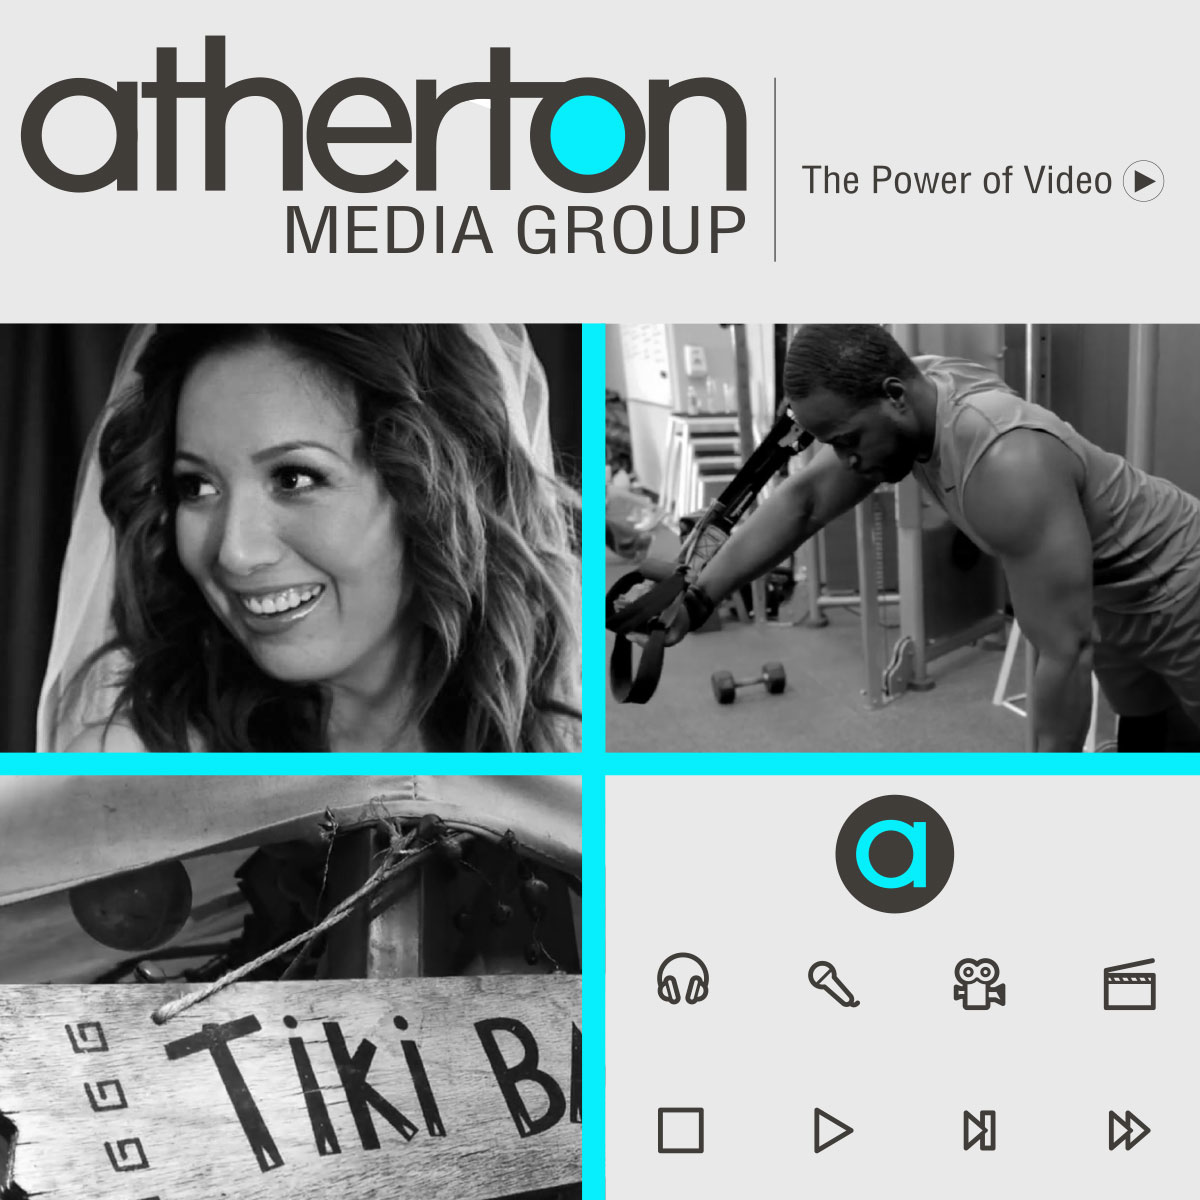 atherton_feature